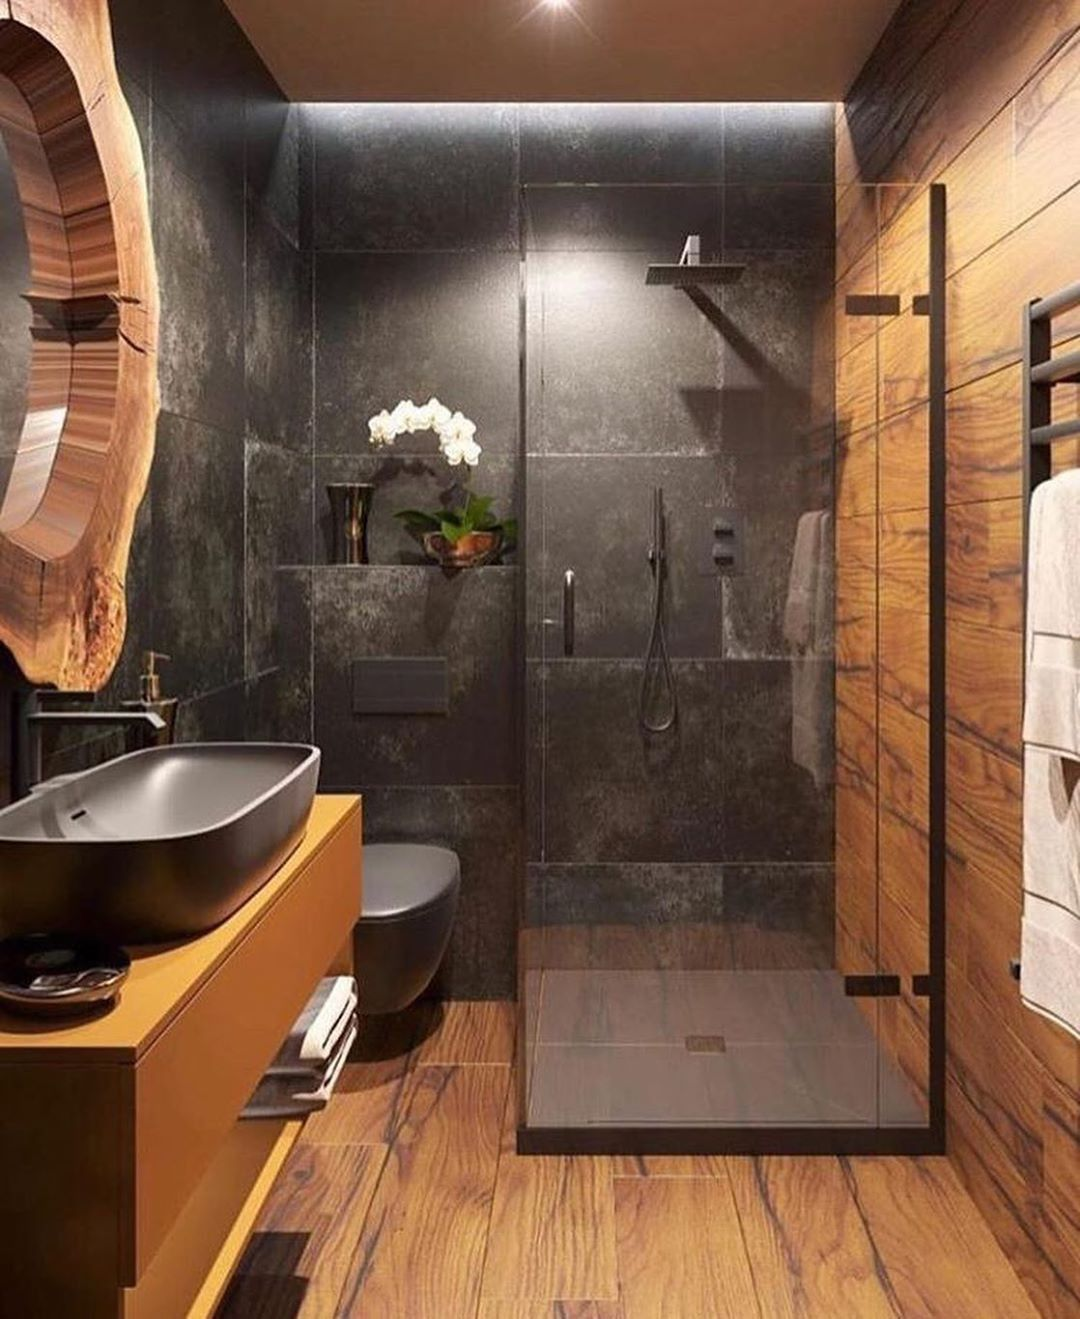 52 Rustic Bathrooms That Will Inspire Your Next Makeover Modern Rustic Bathroom Japanese Bathroom Design Minimalist Small Bathrooms Bathroom Renovation Shower